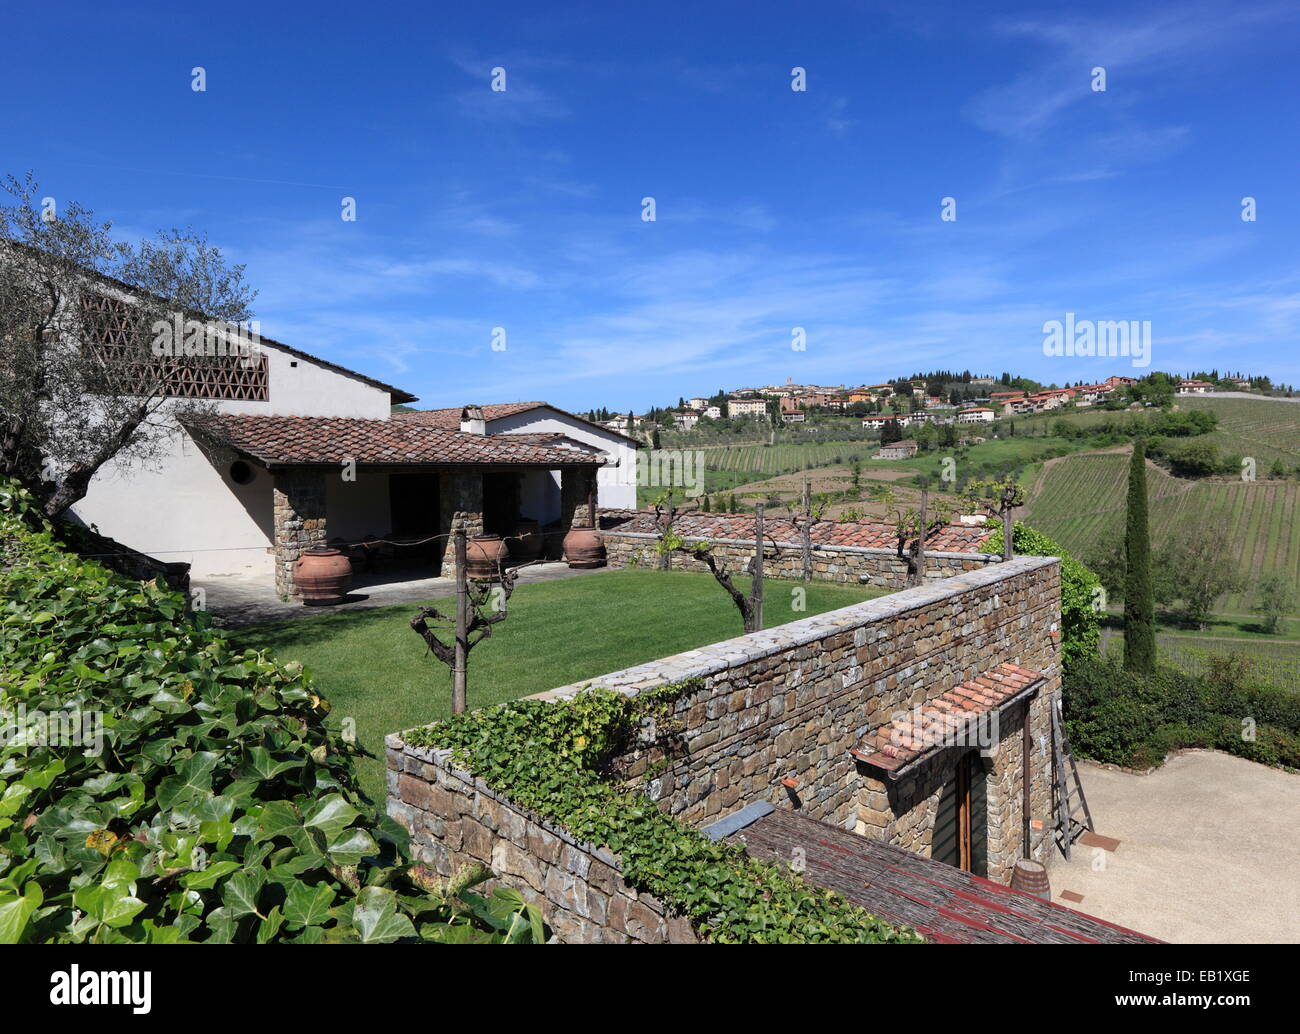 Colle Bereto Winery and the hill town of Radda in Chianti, Tuscany, Italy. - Stock Image